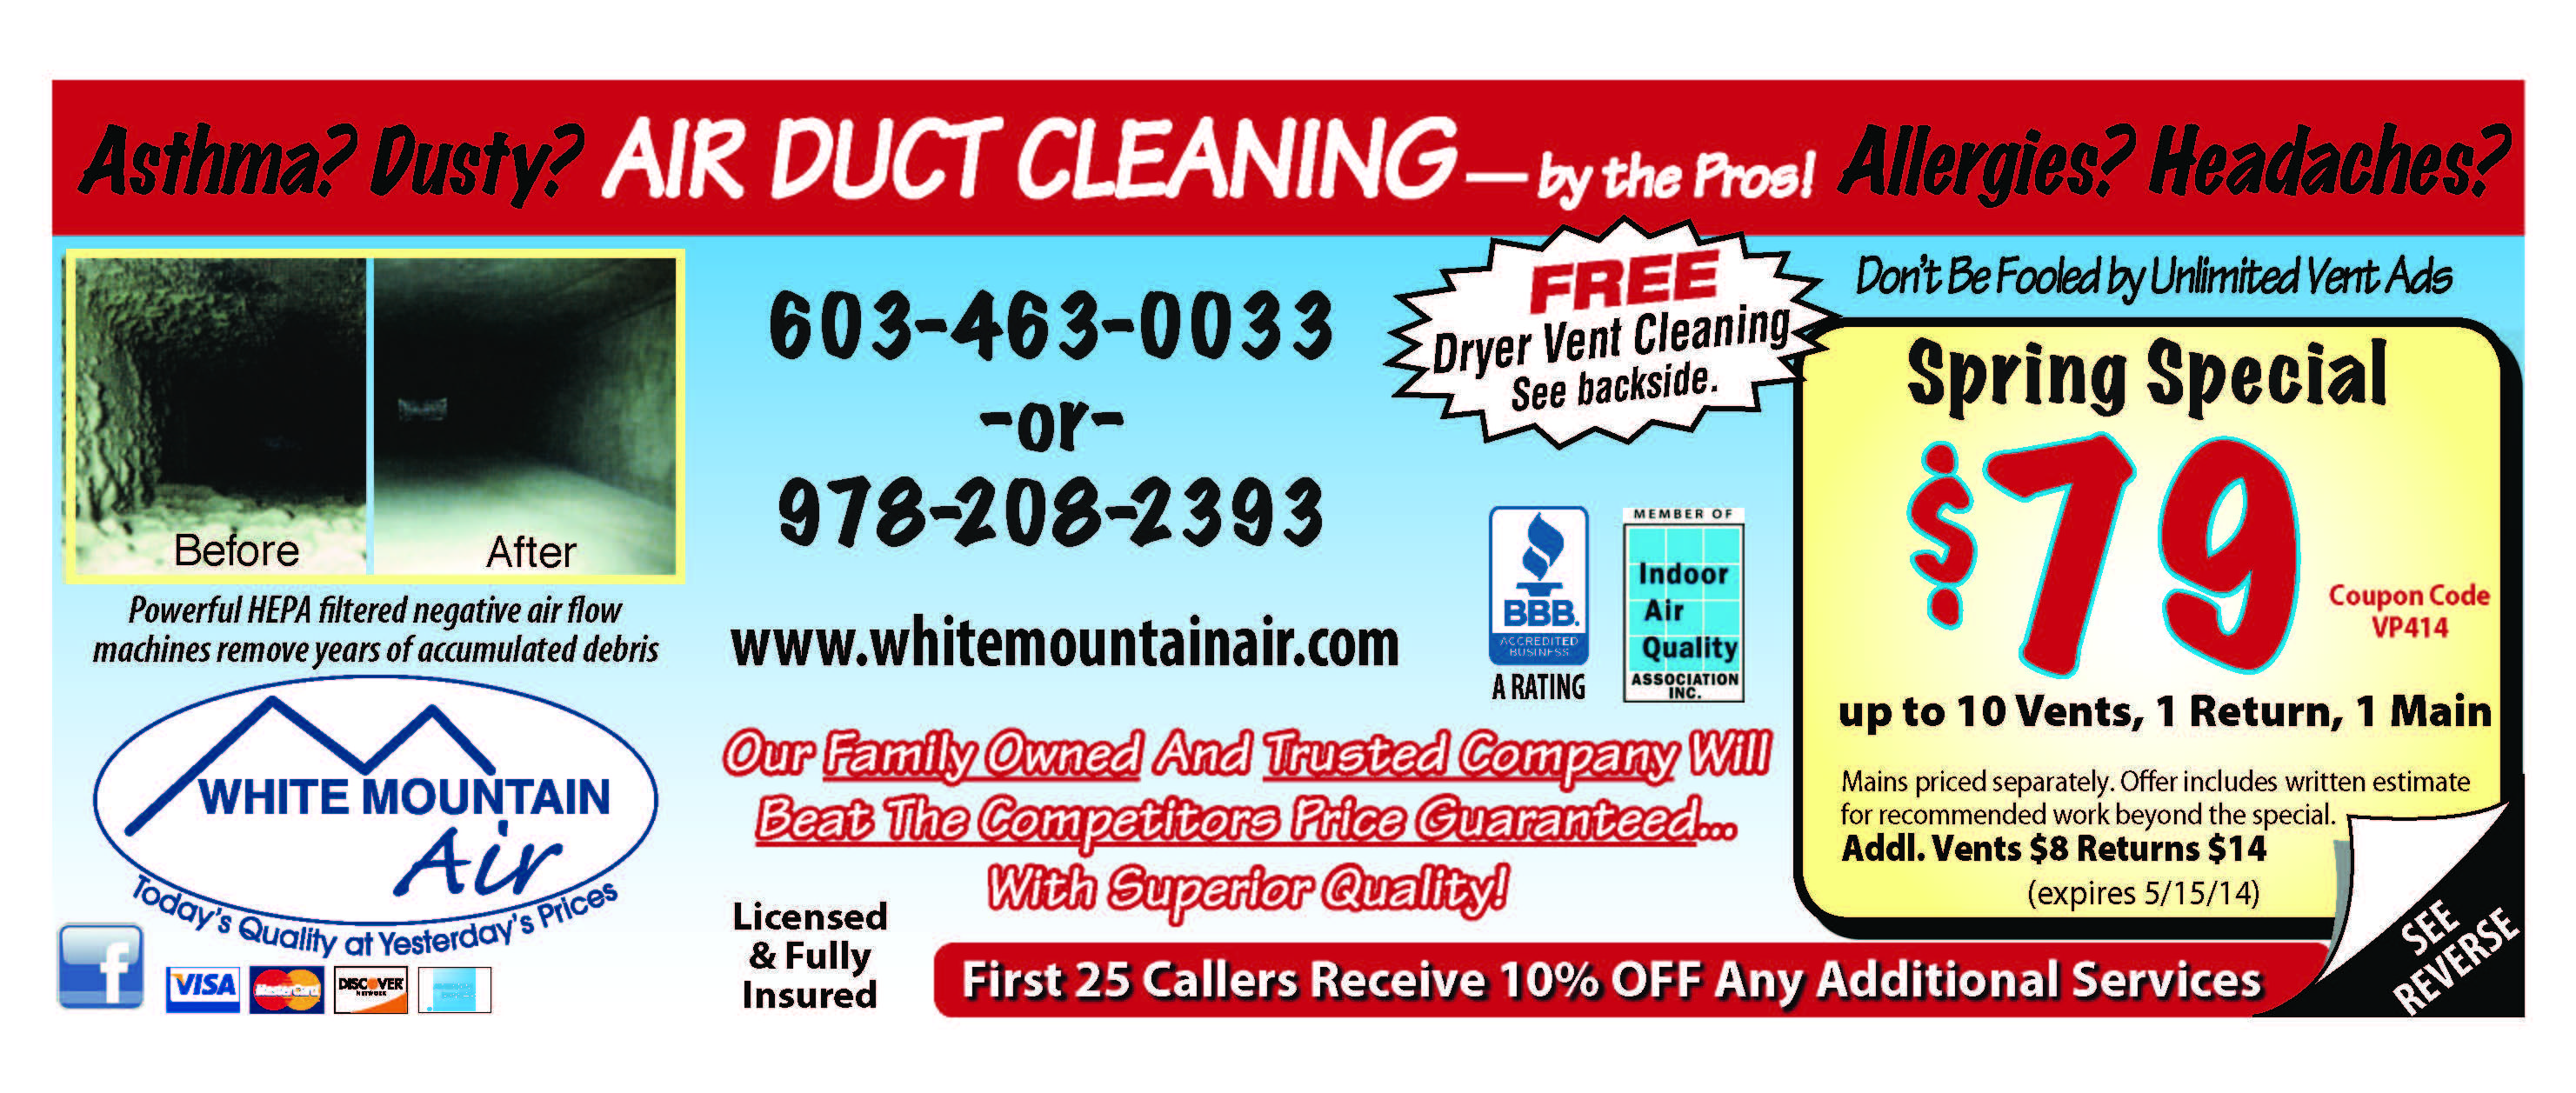 White Mountain Air Coupons Home and Garden Coupons of